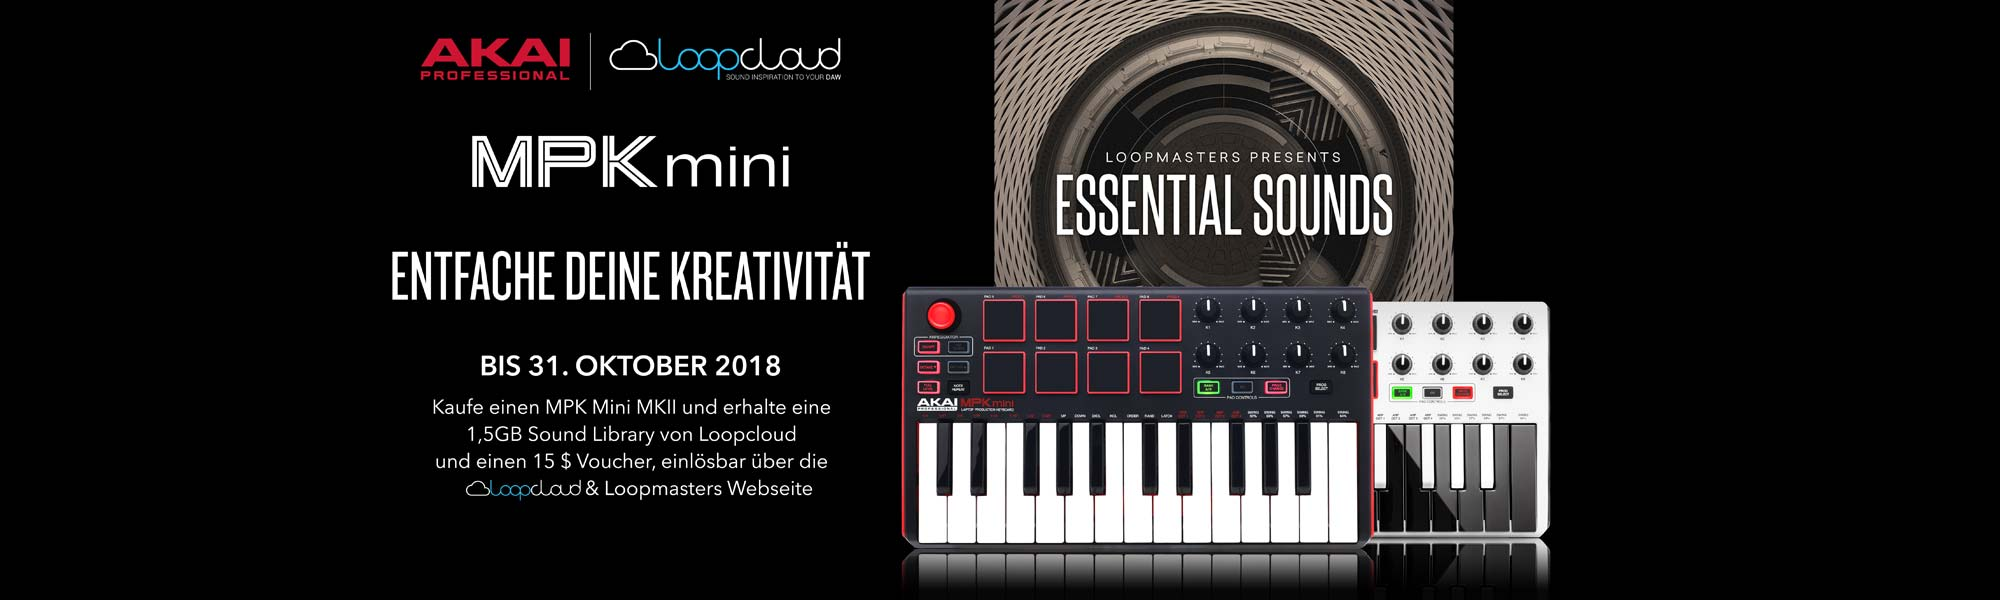 Akai Professional / Loopcloud Promotion